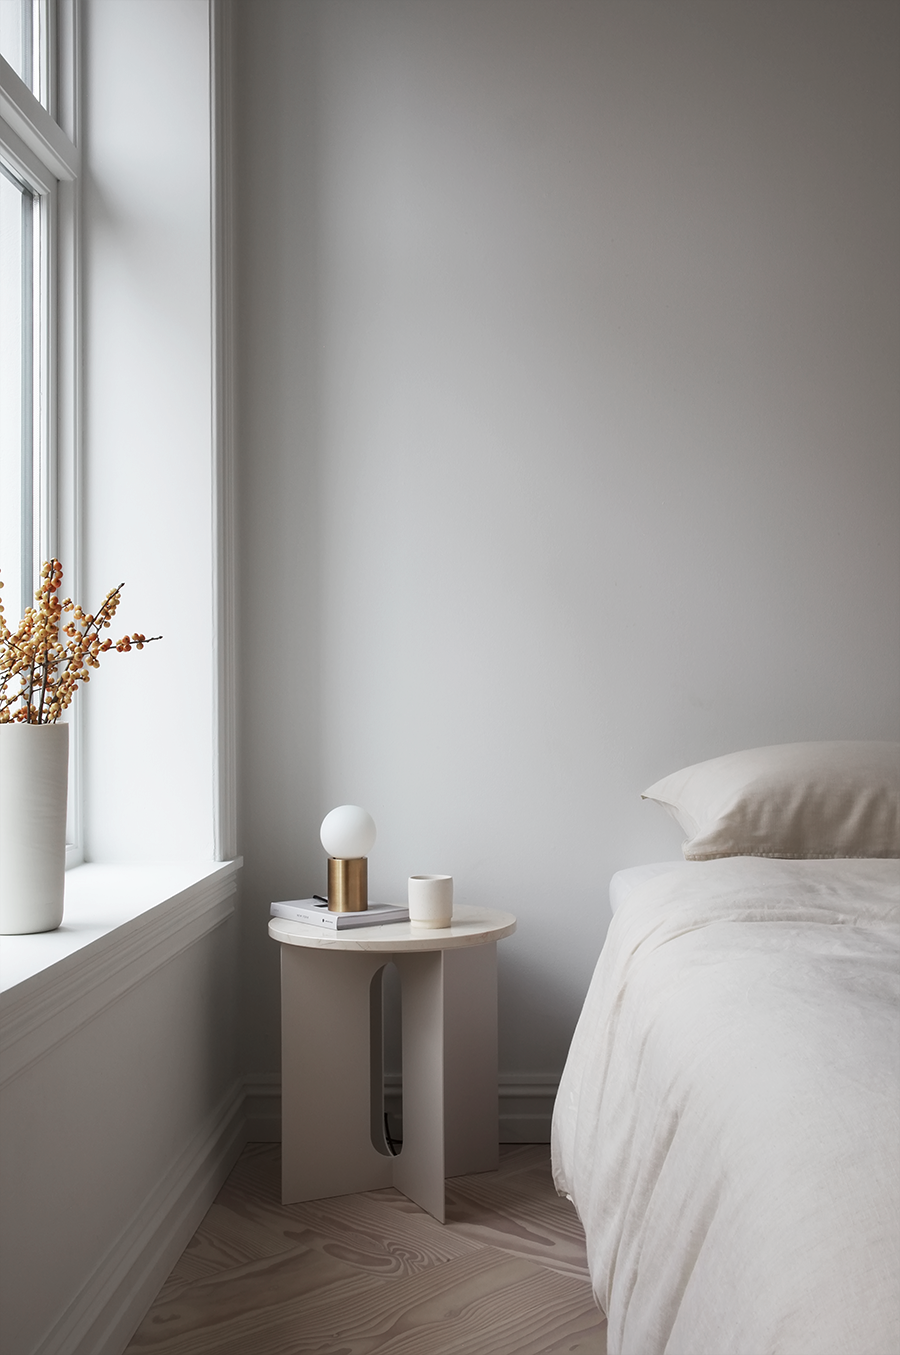 SMALL BEDROOM UPDATE WITH ANDROGYNE TABLE - ELISABETH HEIER